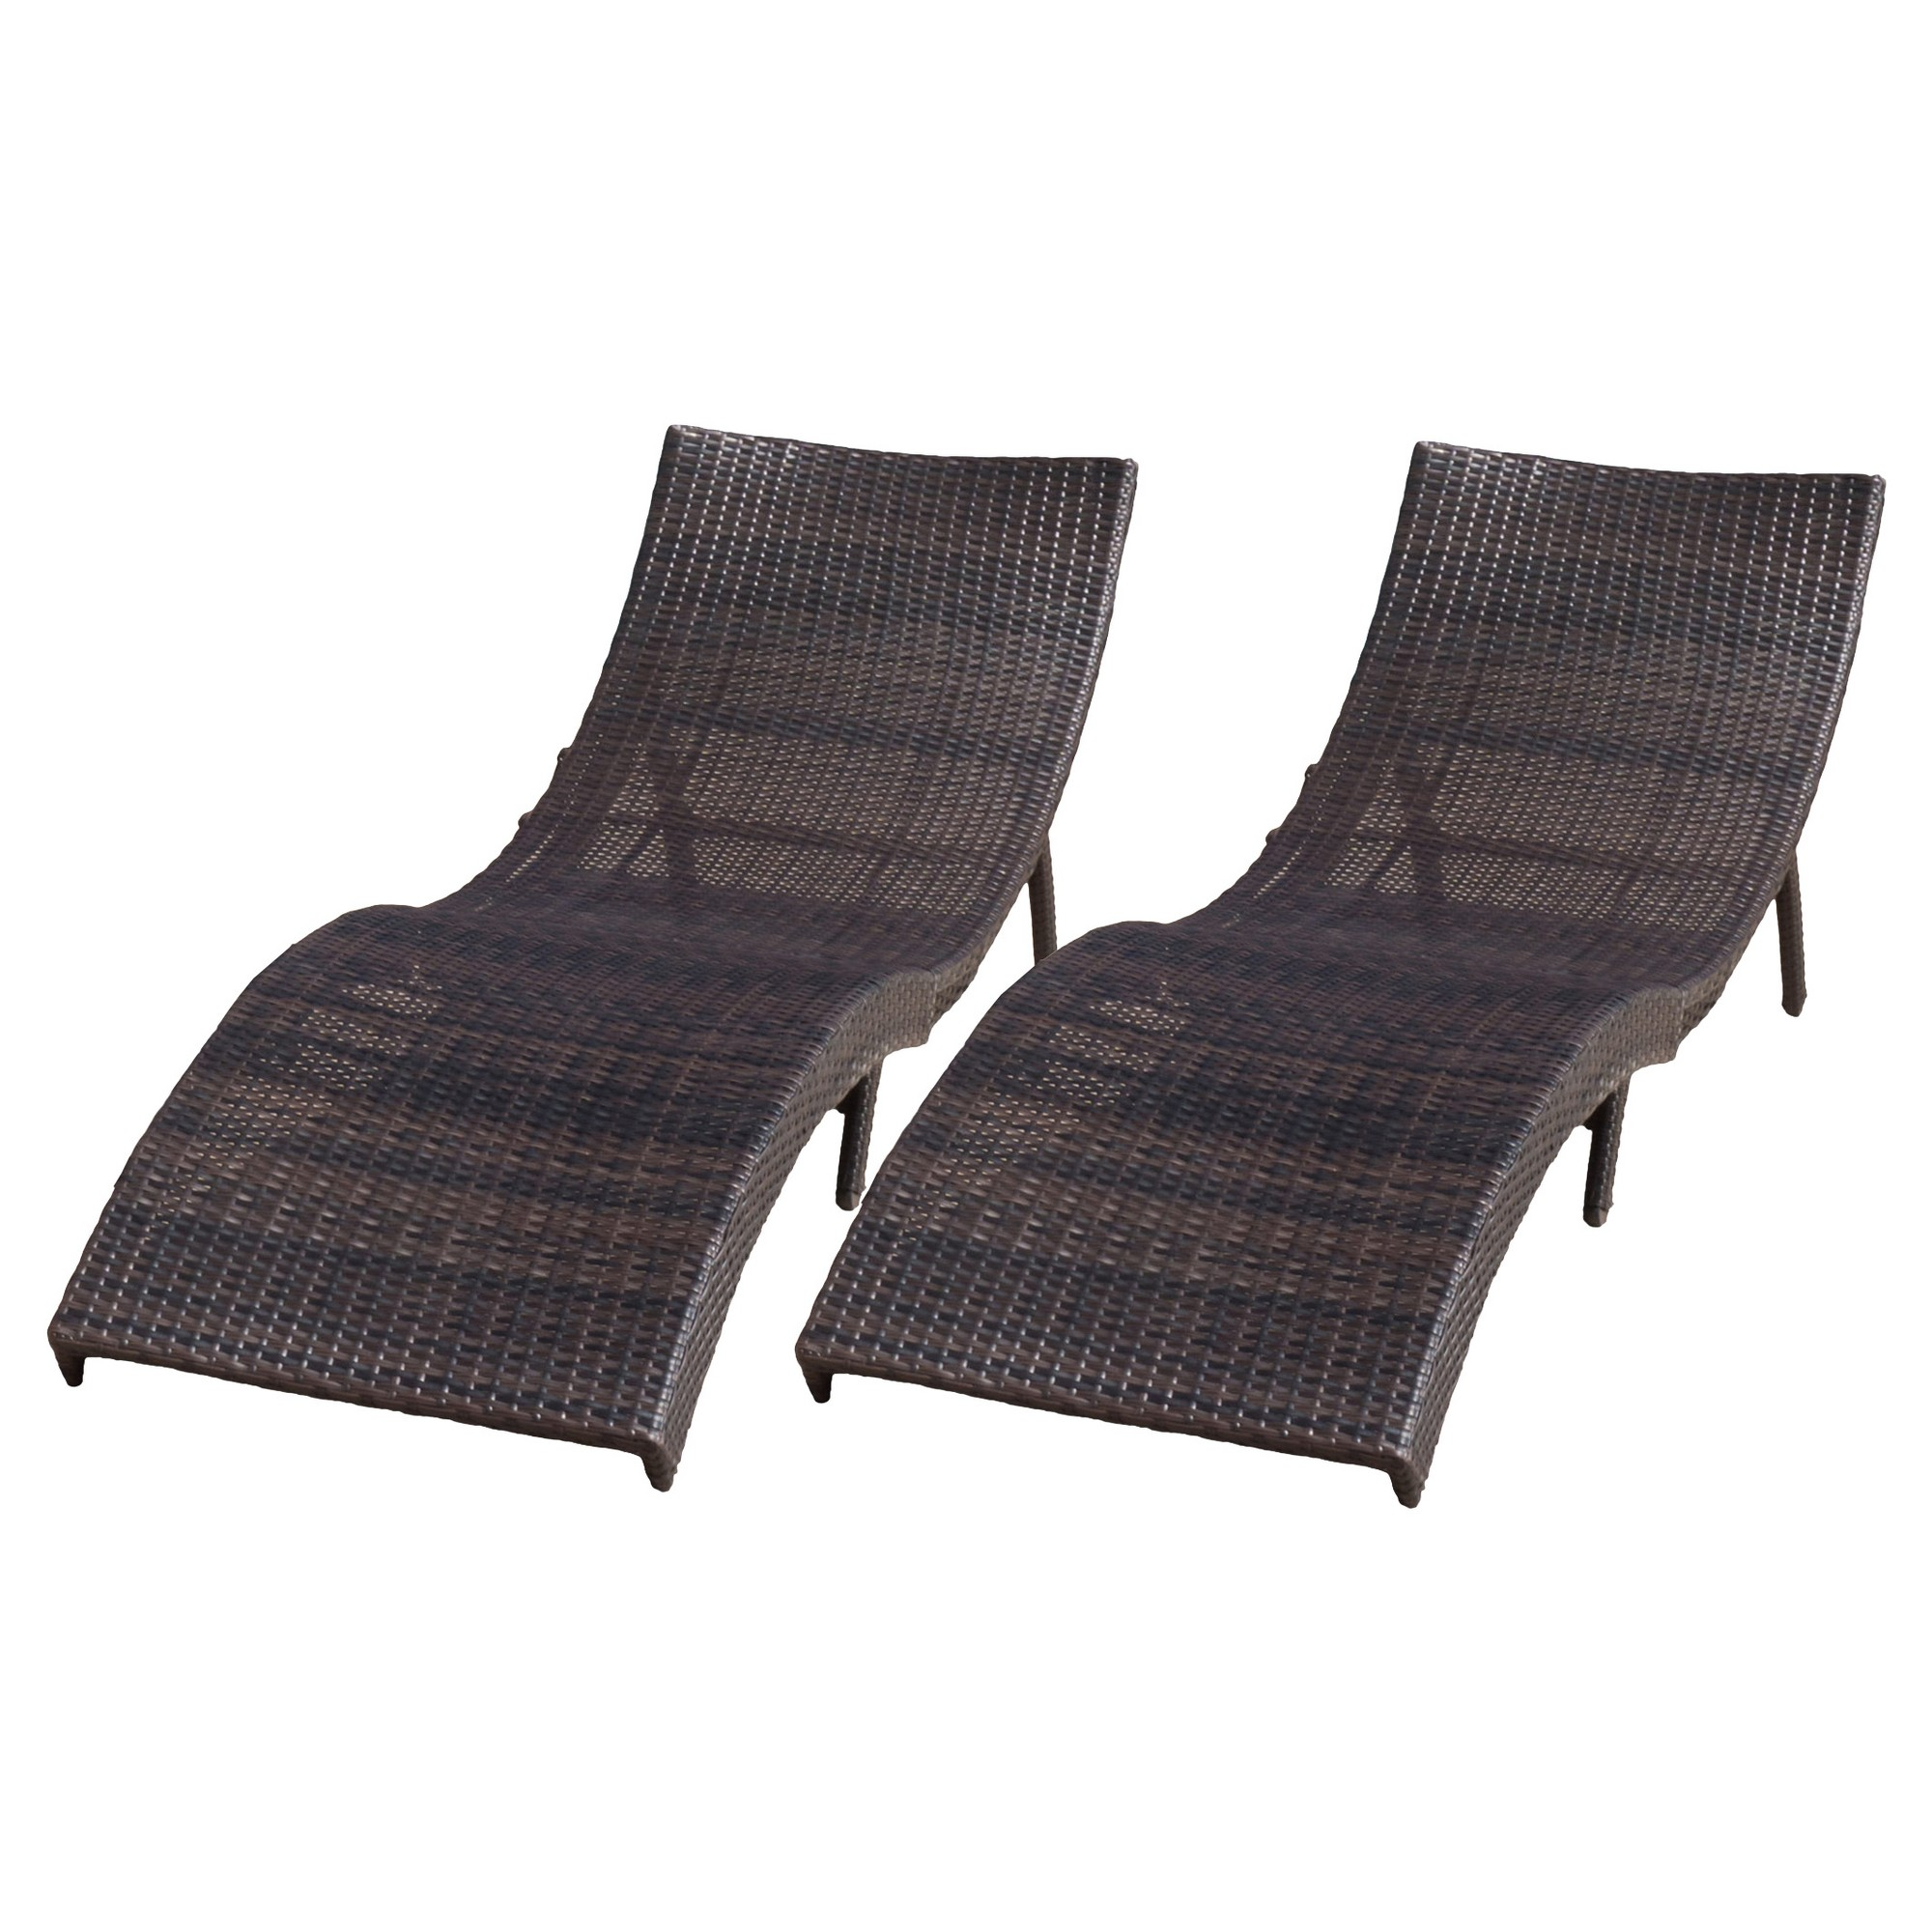 Chaise Longue Acapulco Acapulco Set Of 2 Wicker Folding Chaise Lounge Multibrown